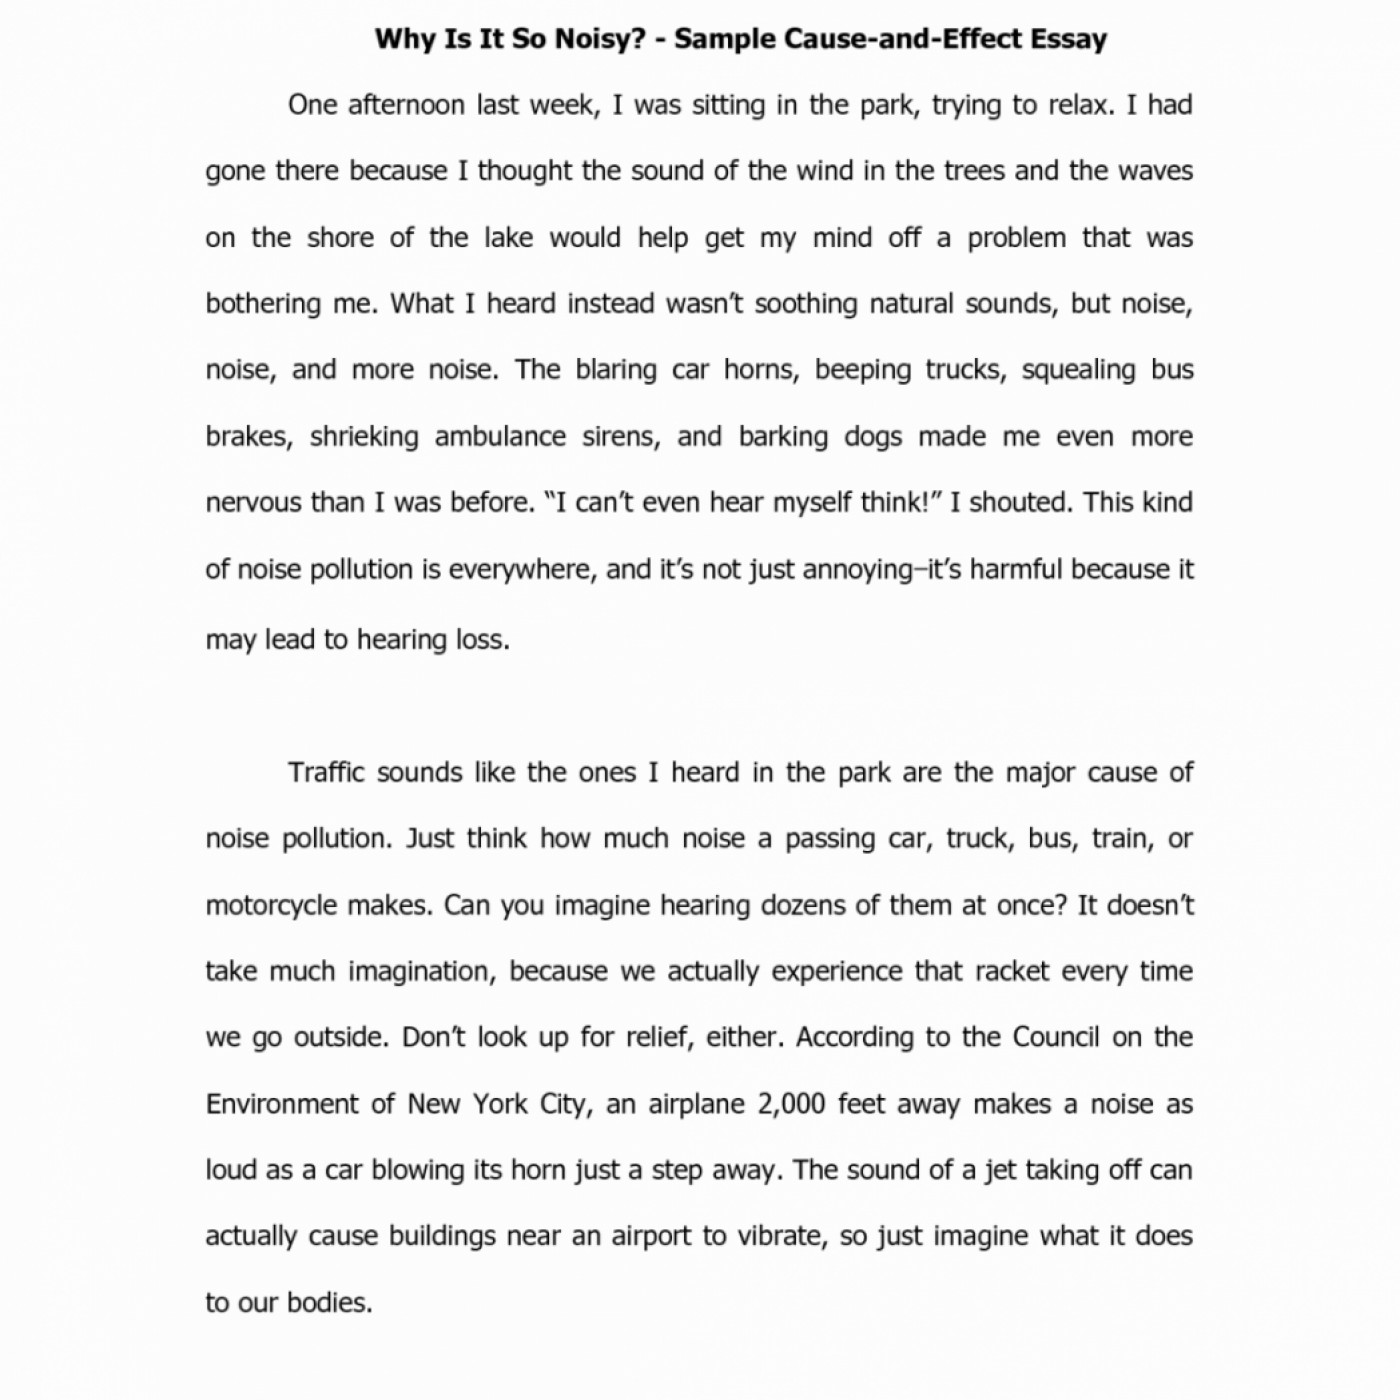 027 Cause And Effect Essays Format Best Of For Or Good Cover Bystander Domino Analysis Ielts Free 6th Grade College Pdf Middle School 1048x1048 Amazing Essay Examples 4th Divorce 1400